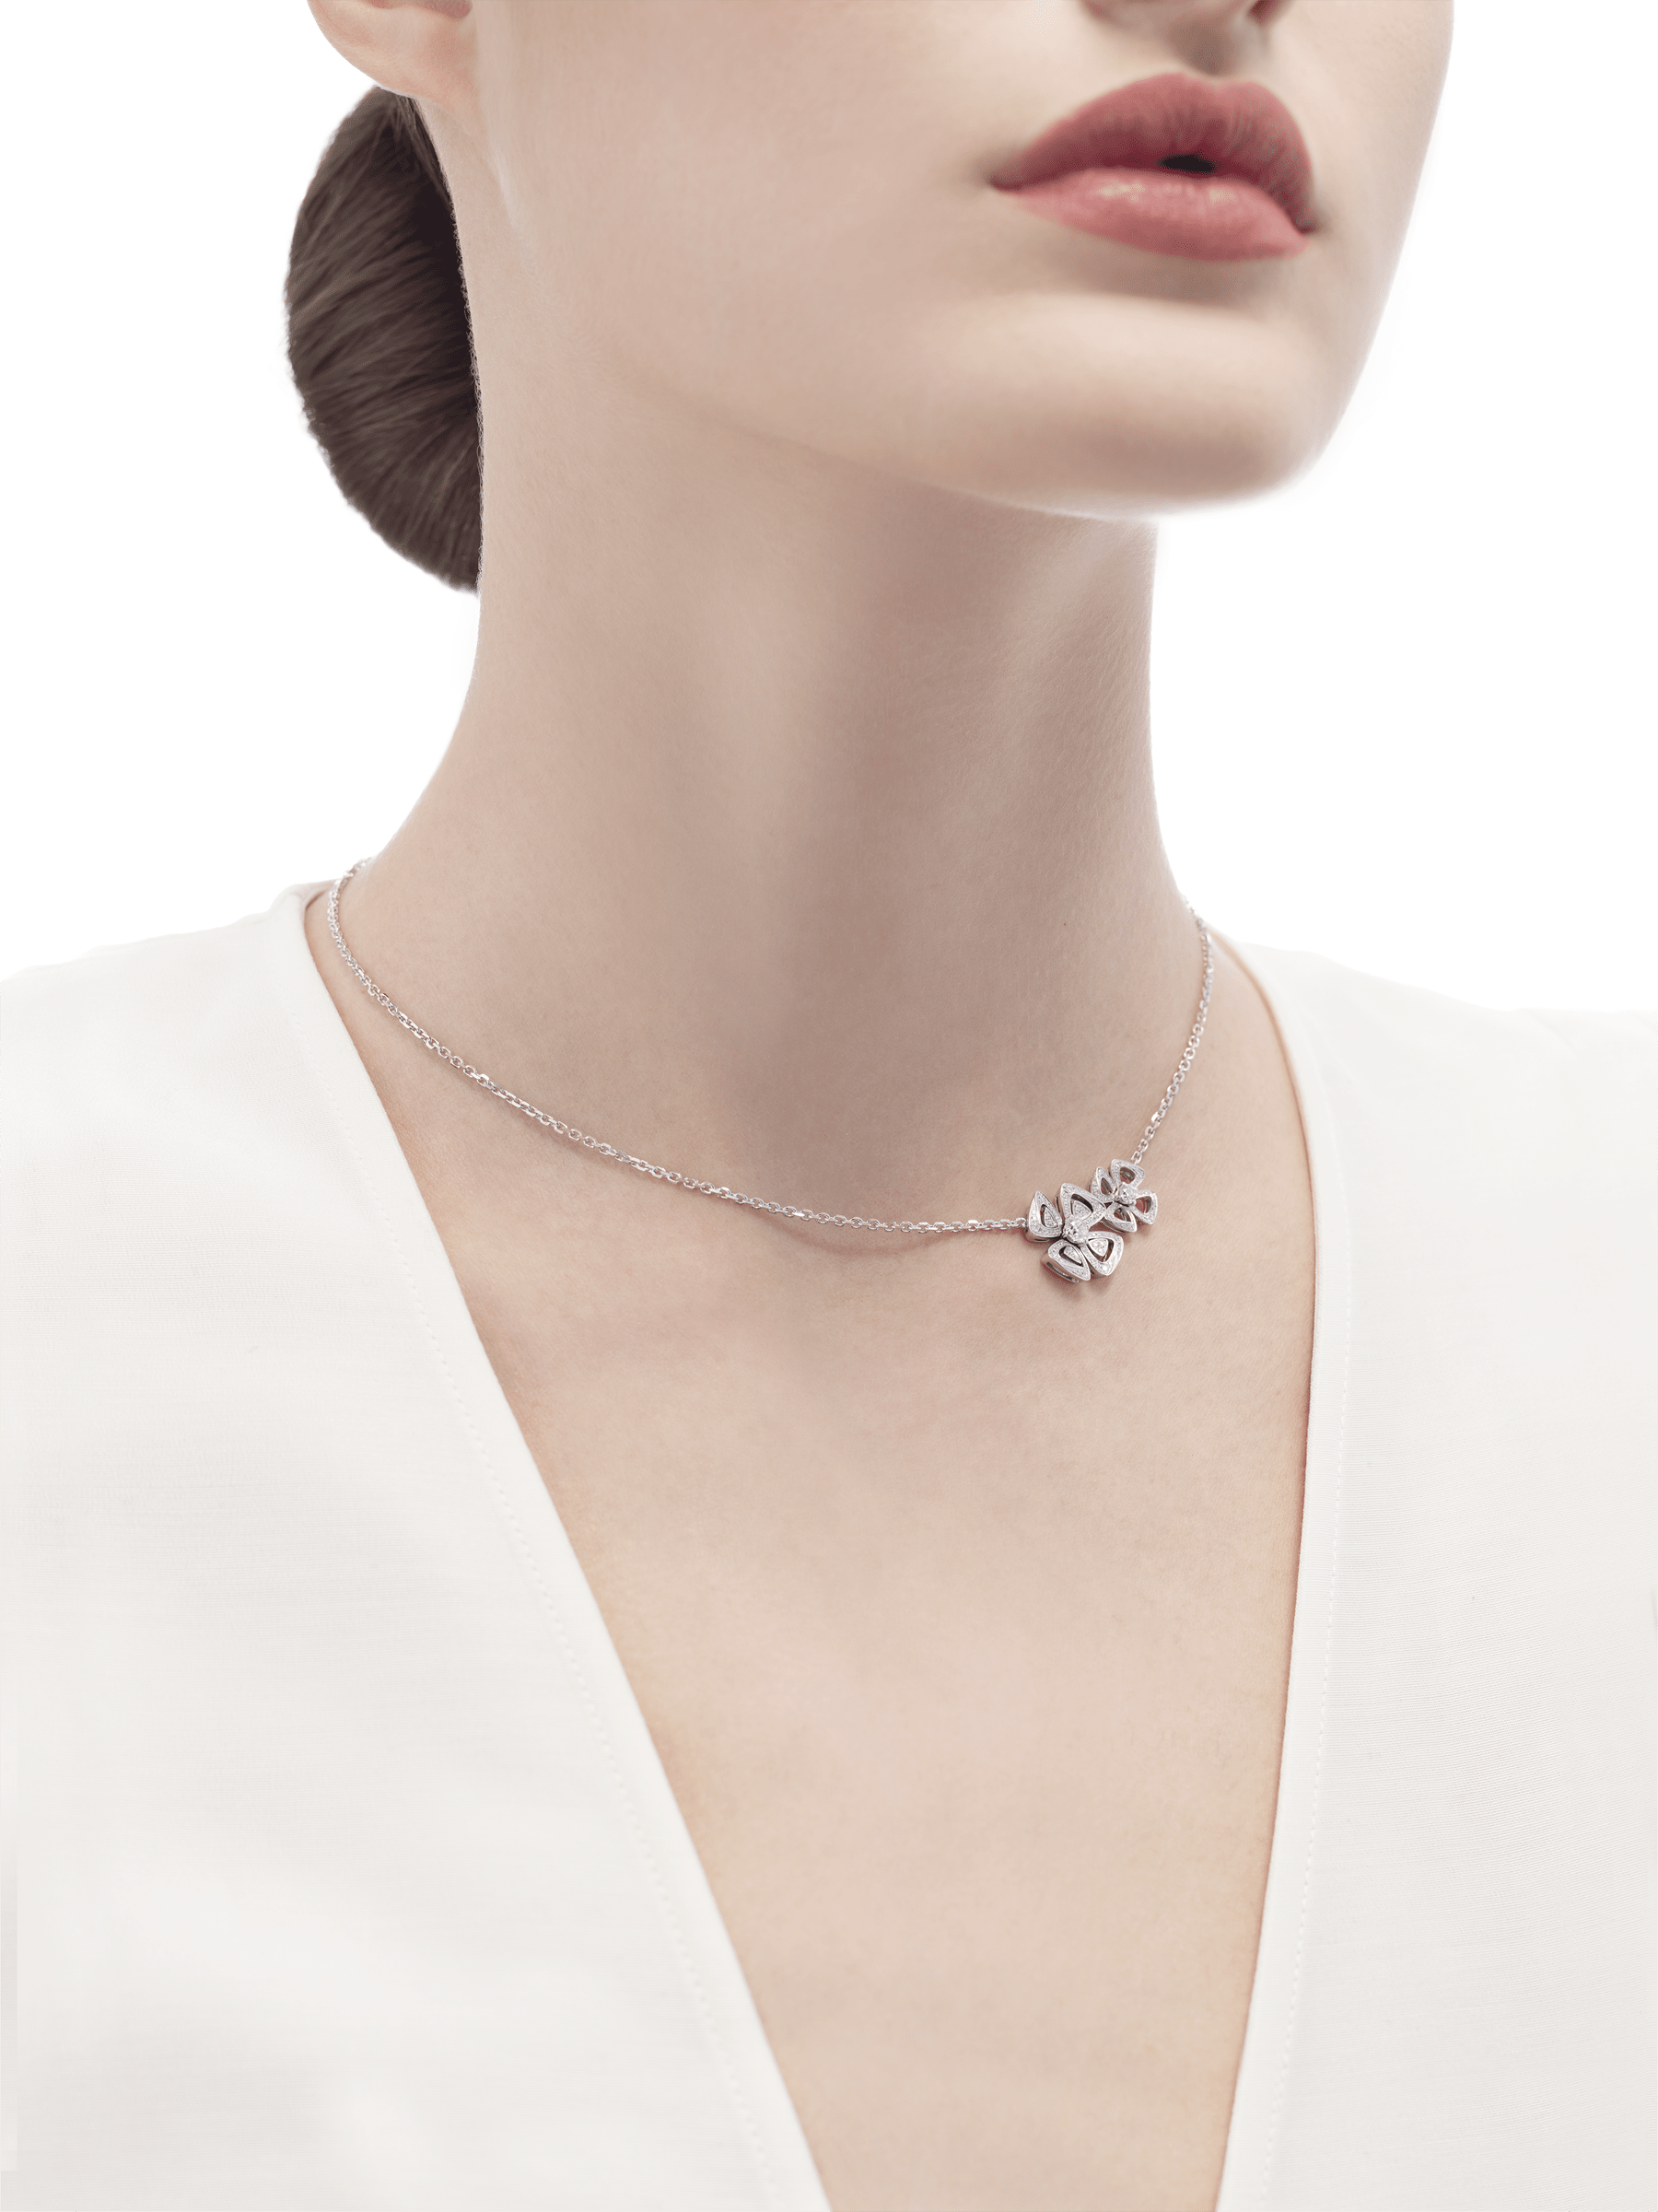 Fiorever two-flowers 18 kt white gold necklace set with two central diamonds (0.30 ct and 0.10 ct) and pavé diamonds (0.31 ct) 354498 image 4